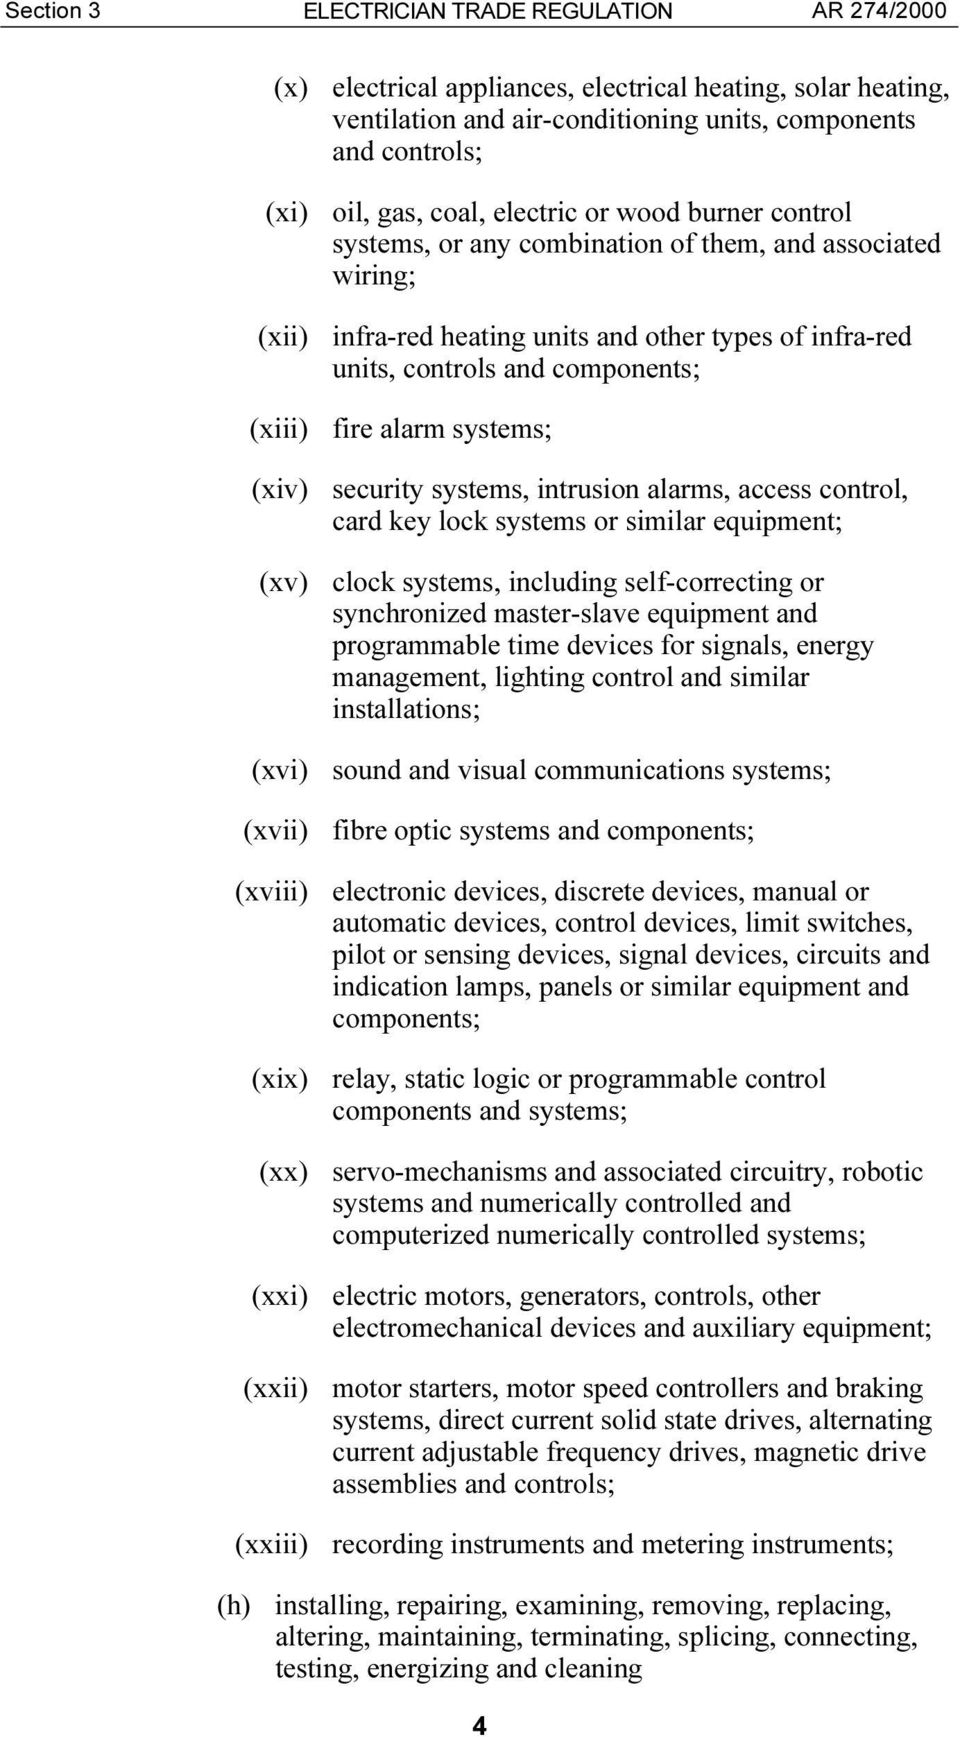 (xiv) security systems, intrusion alarms, access control, card key lock systems or similar equipment; (xv) clock systems, including self-correcting or synchronized master-slave equipment and